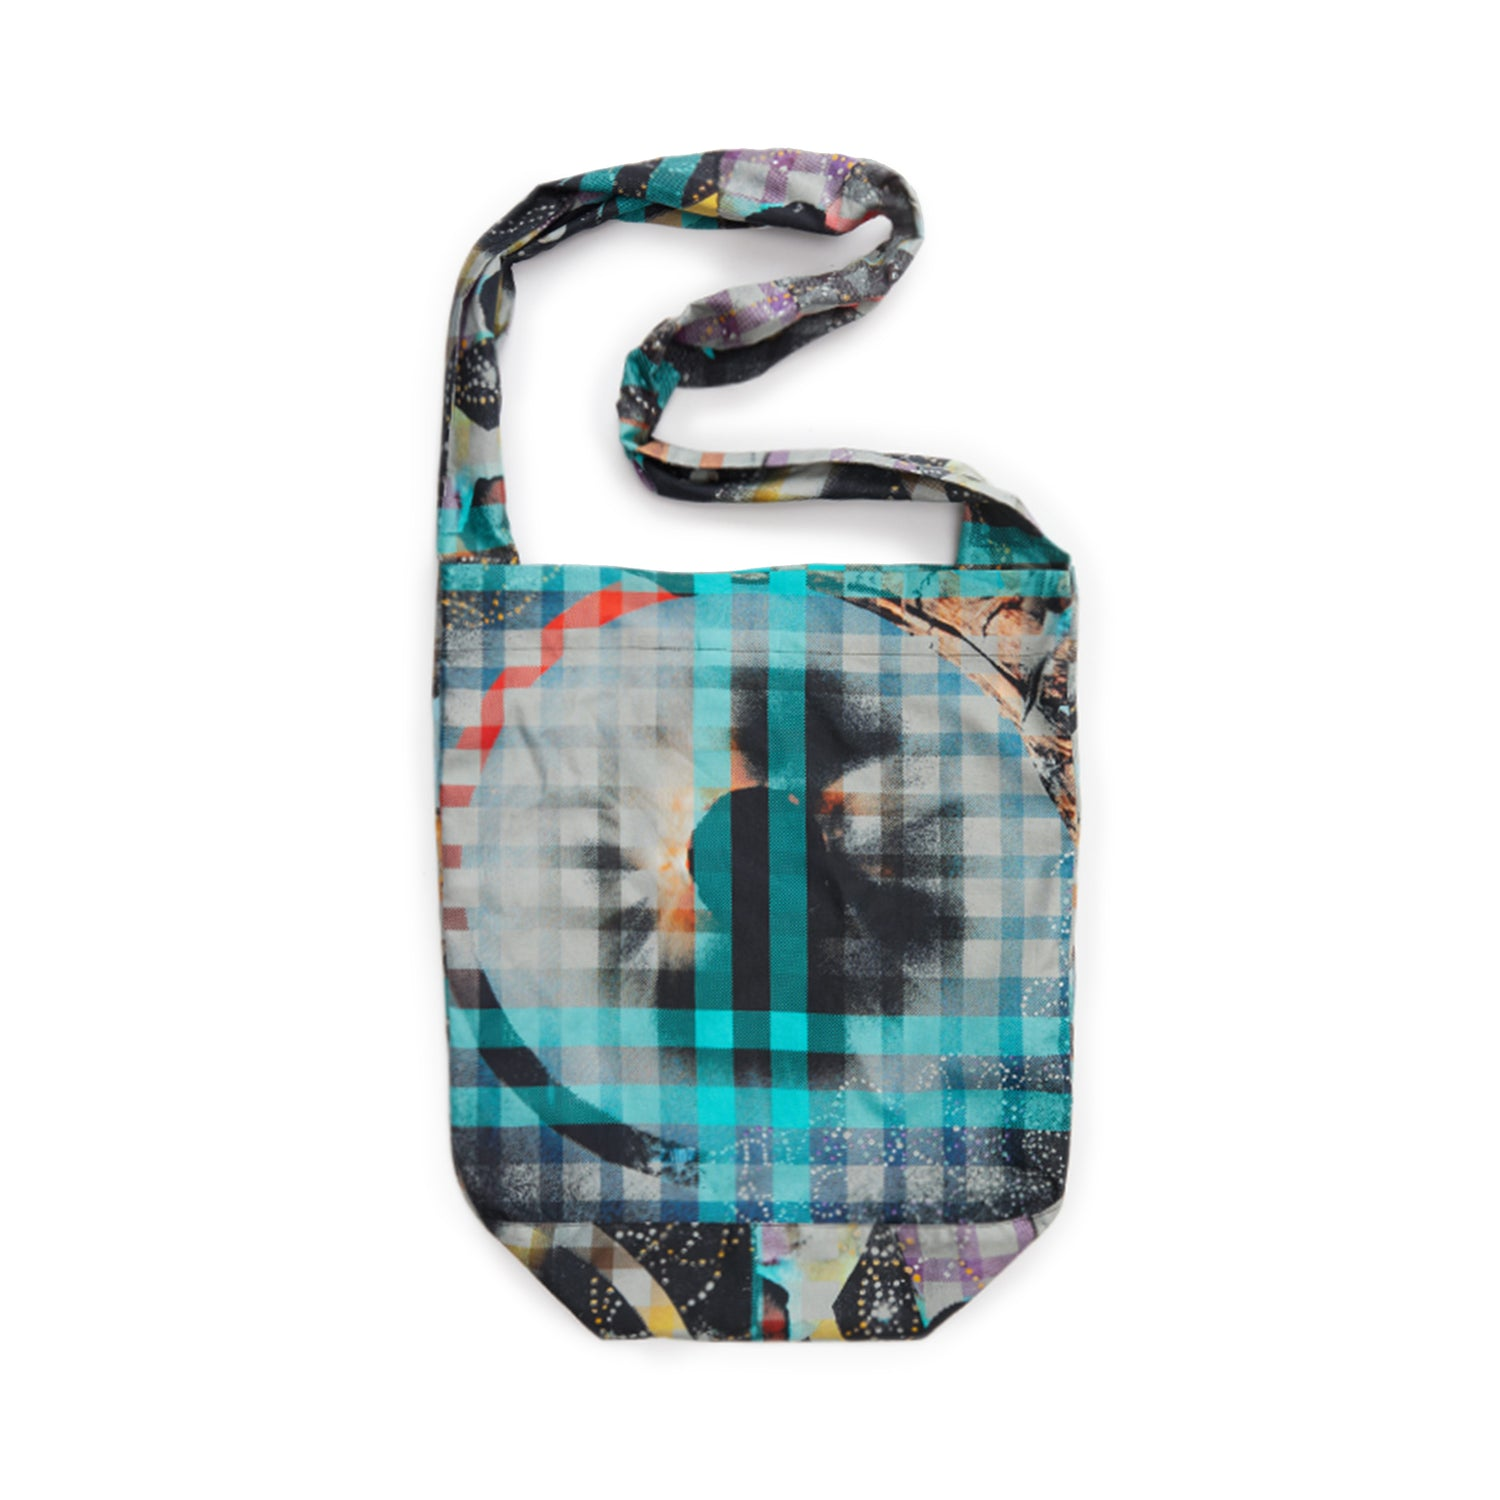 Birdseye View Plaid Shoulder Bag